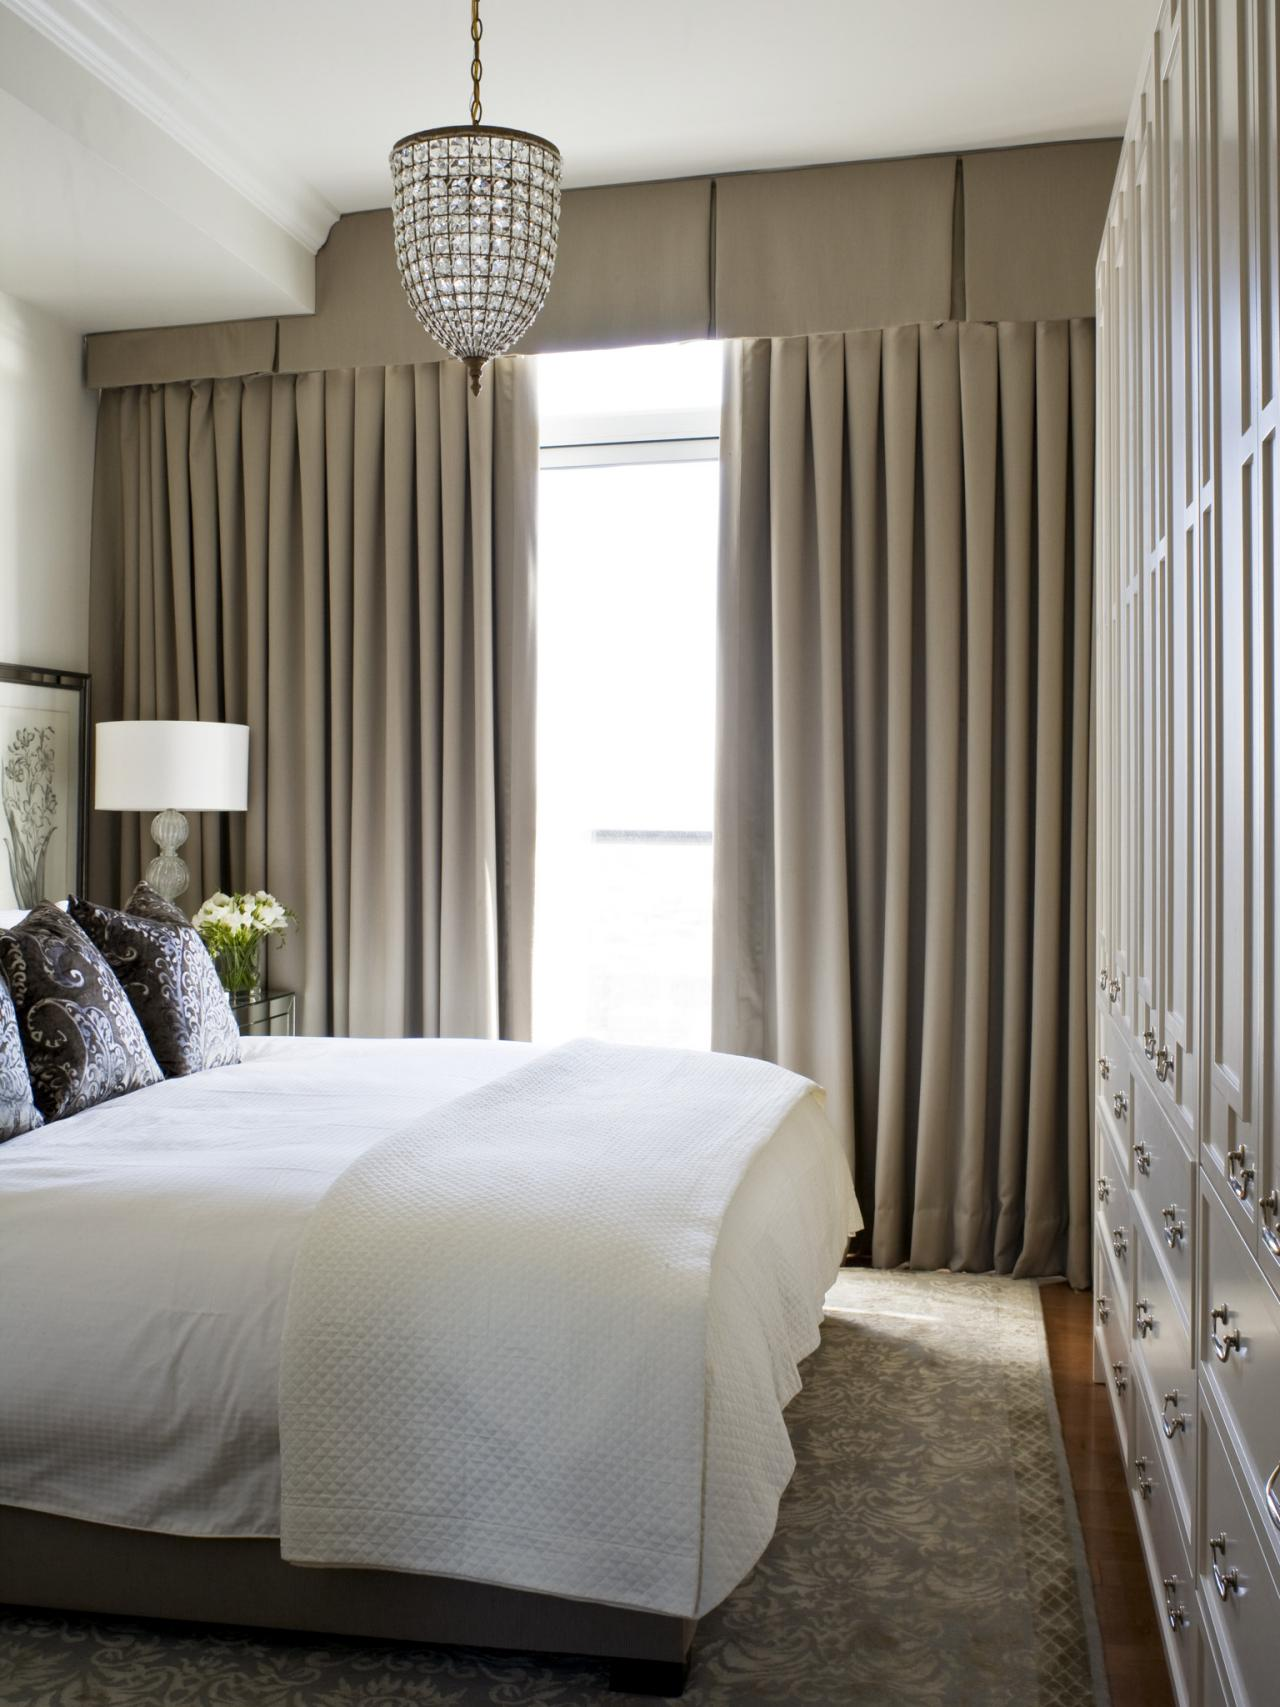 Best 14 Ideas For A Small Bedroom Hgtv S Decorating Design This Month